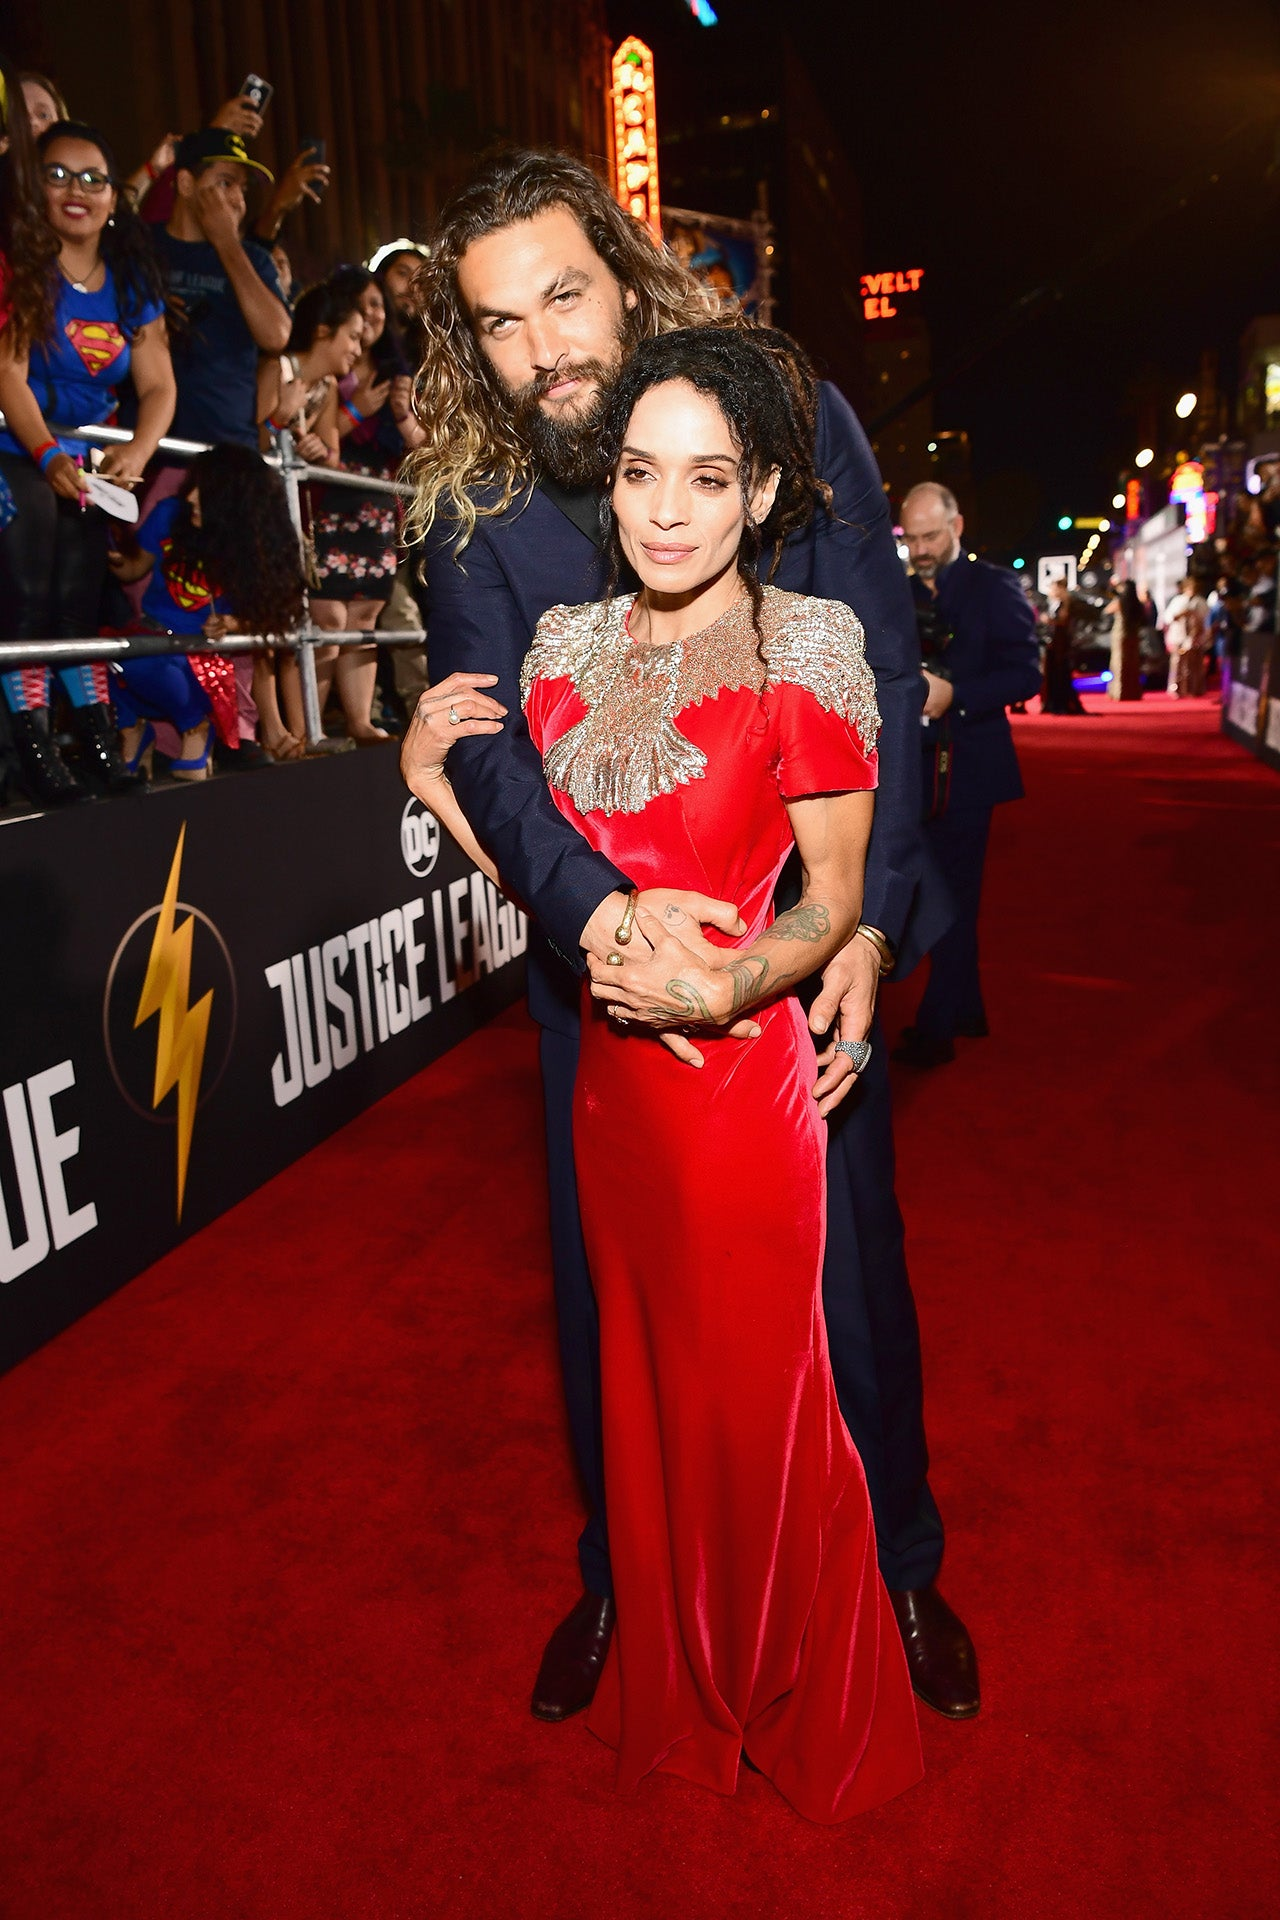 Lisa Bonet and Jason Momoa at 'Justice League' premiere